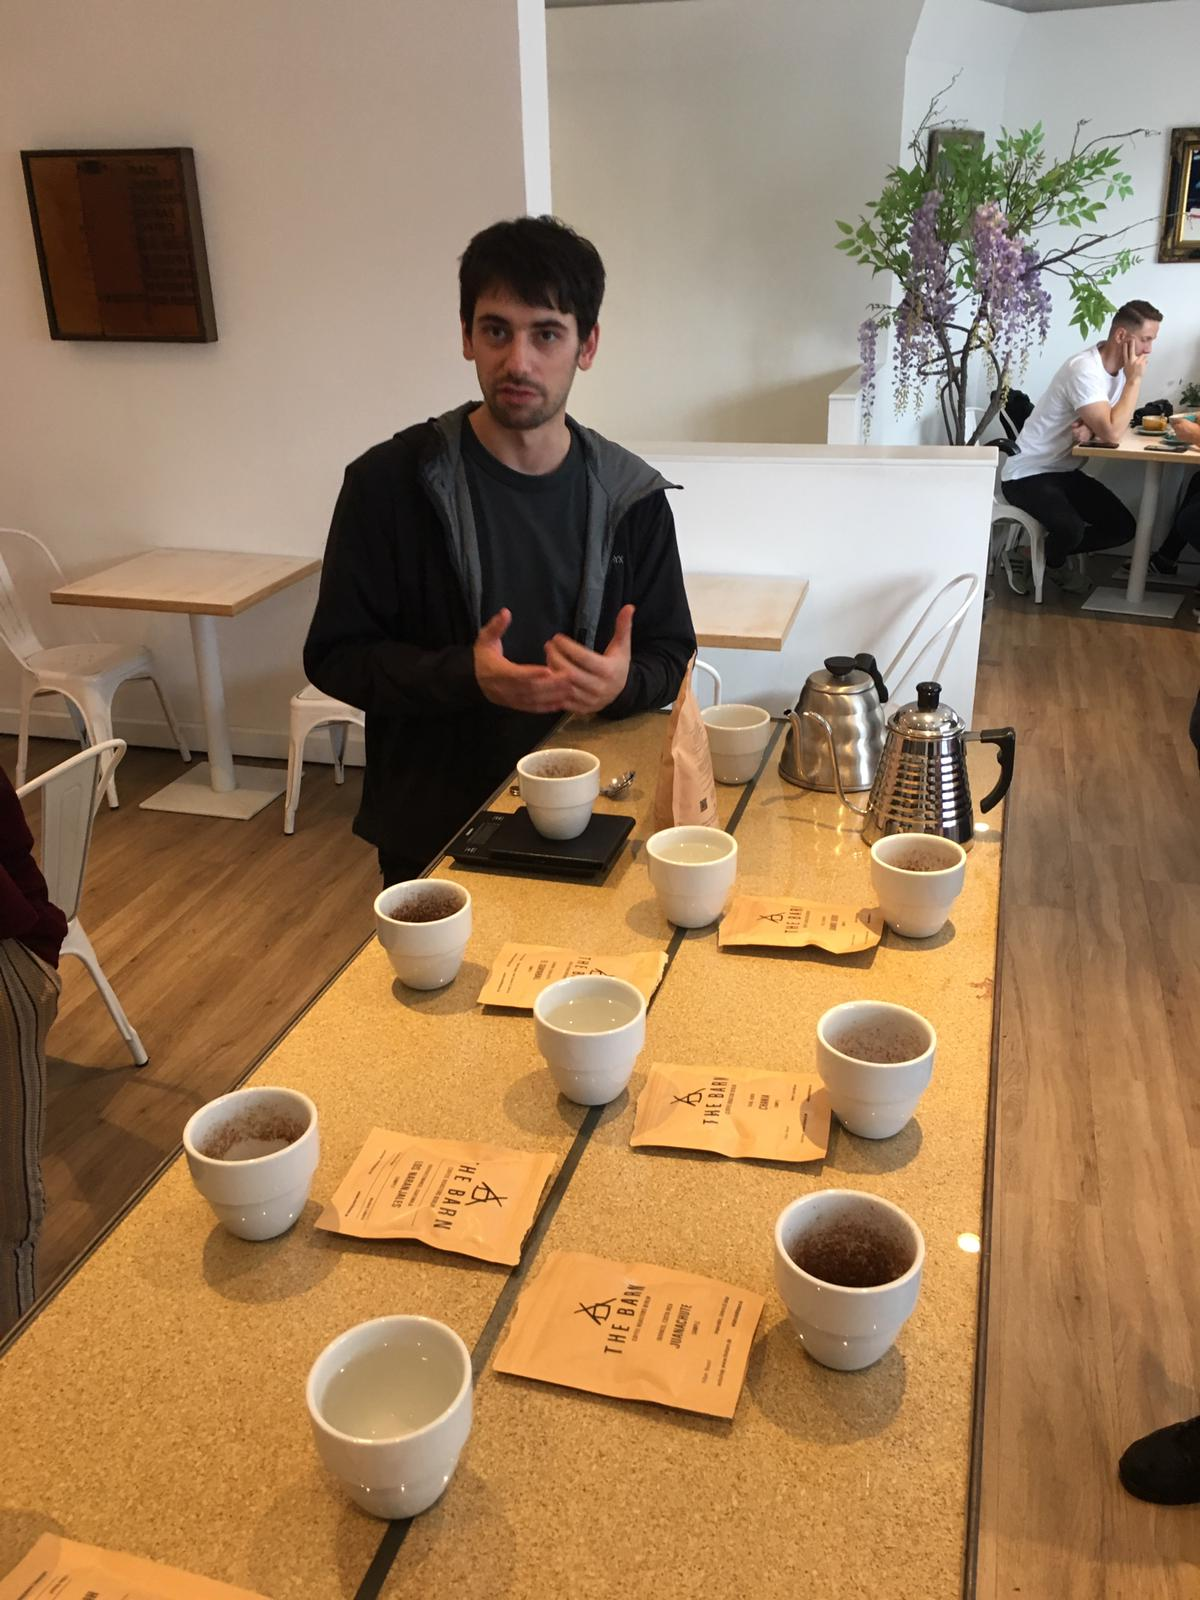 barn cupping august 2019 photo 1.jpg